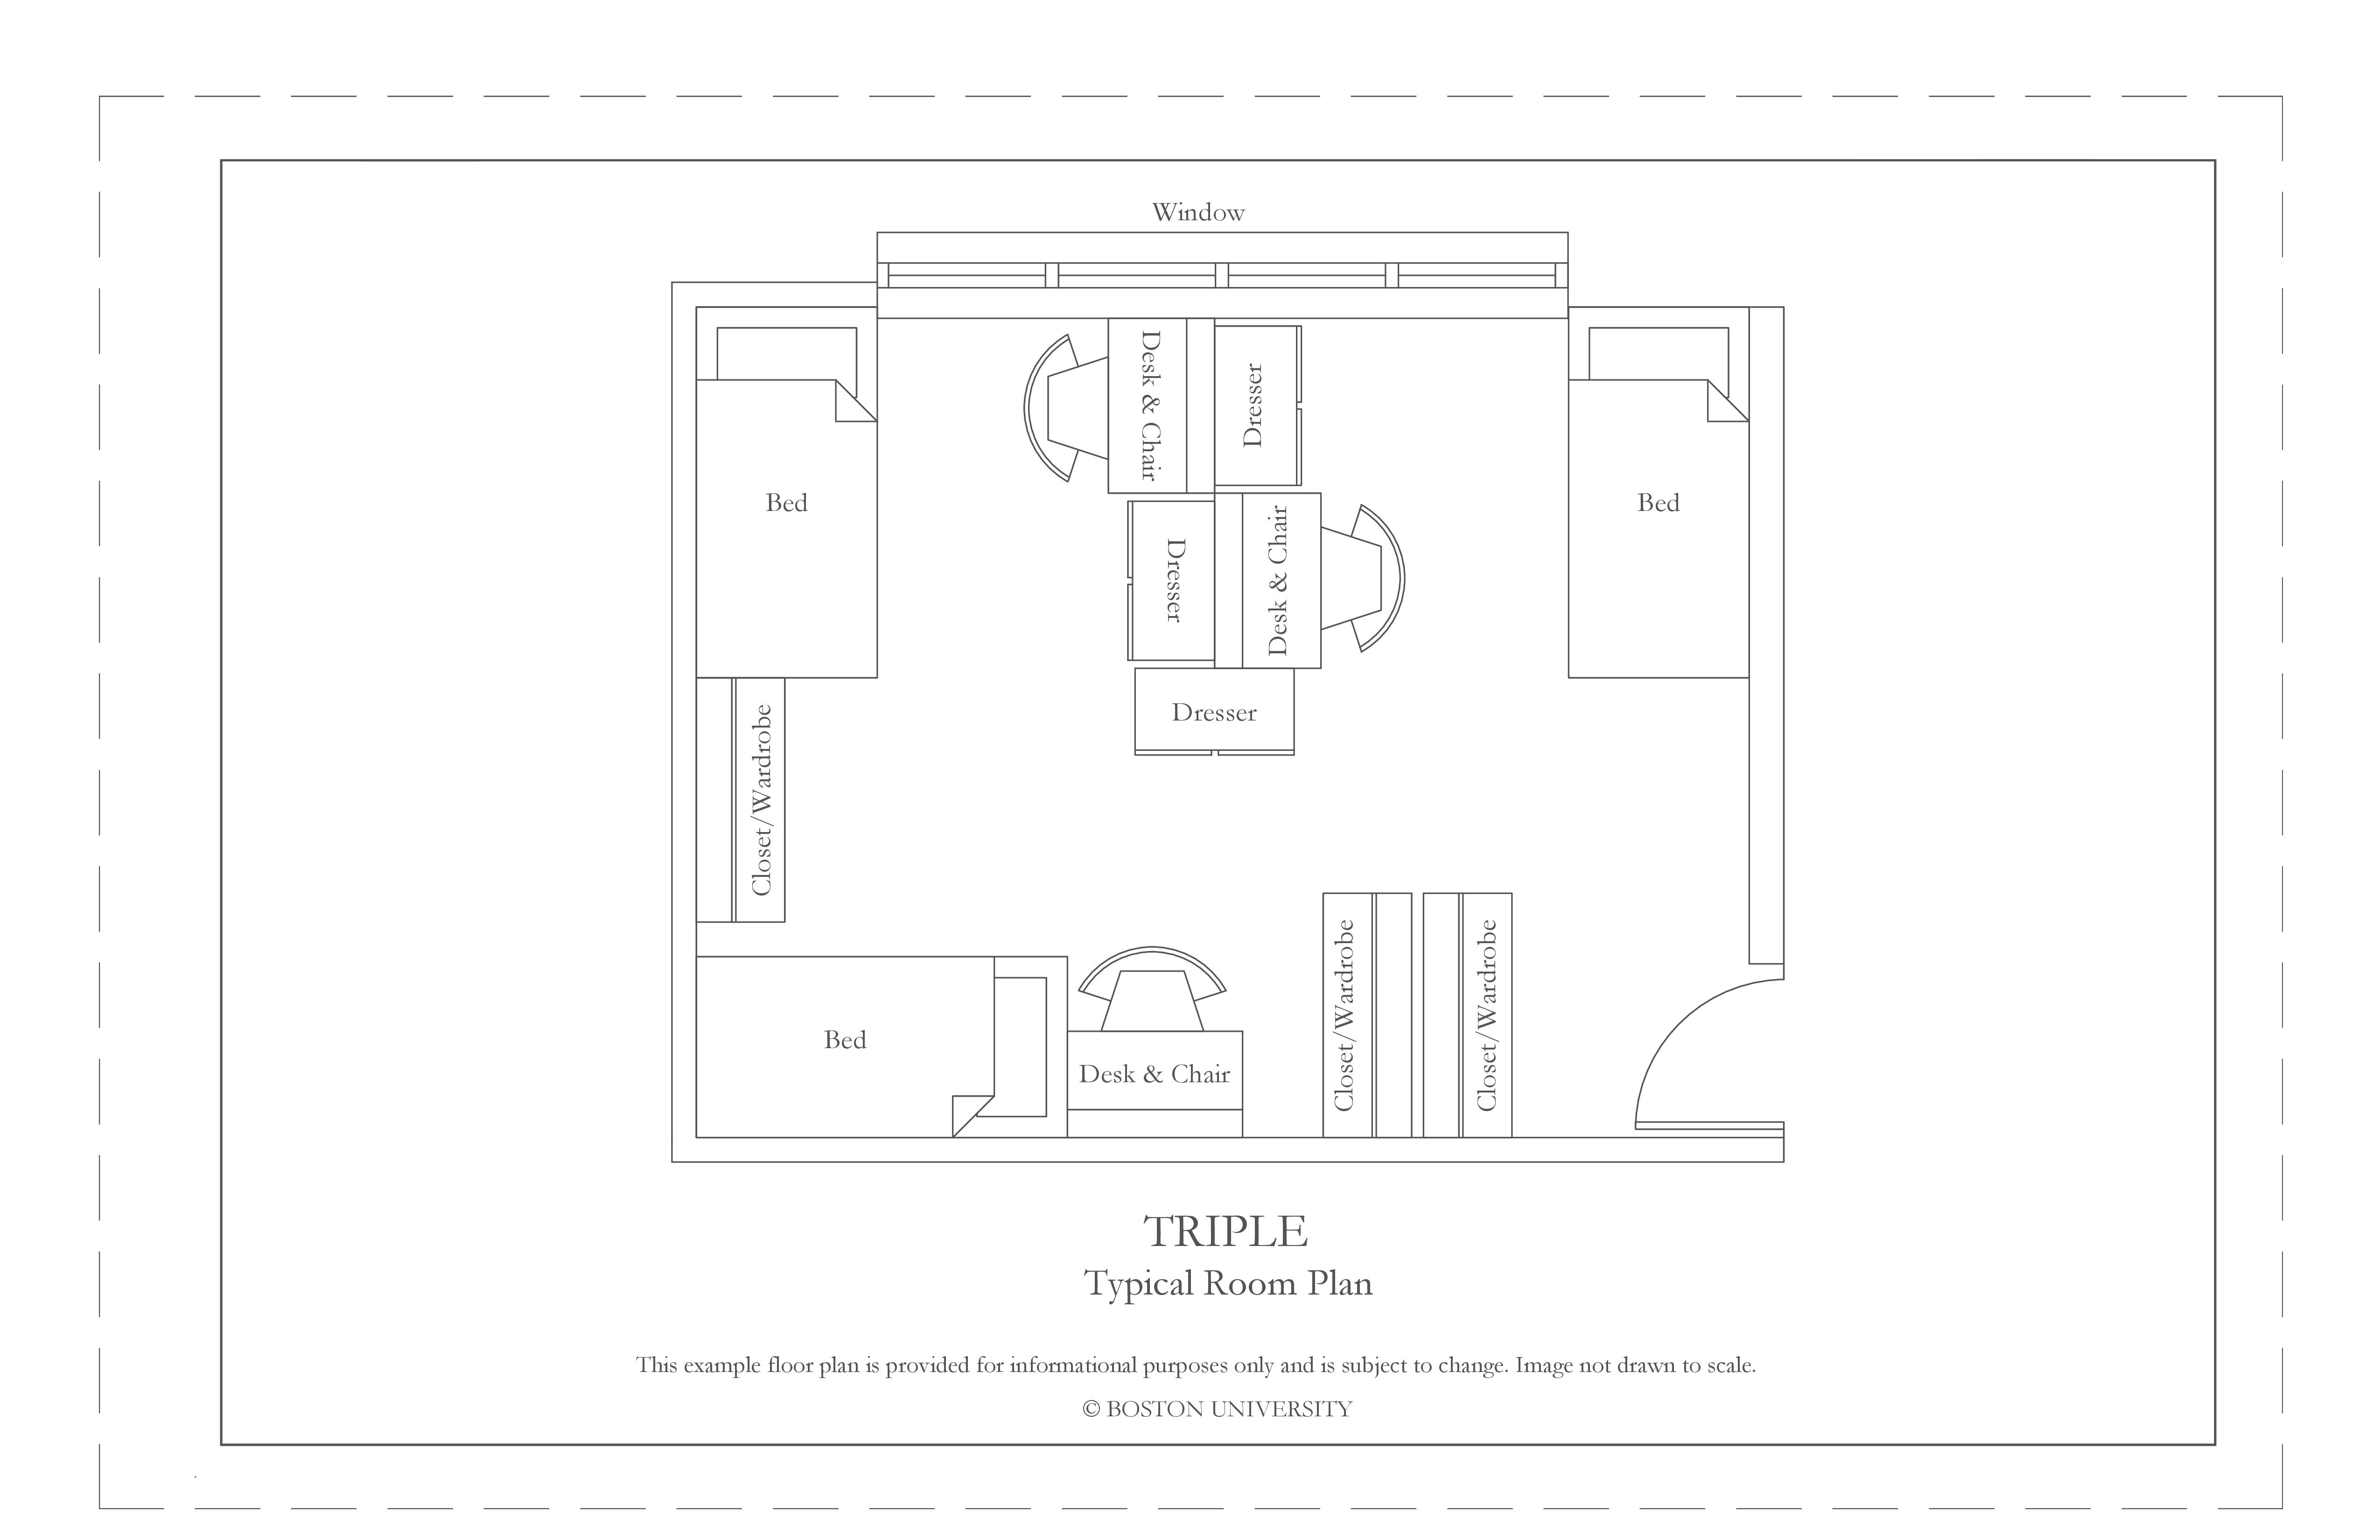 Dorm Room Layout Planner Perfect Mizzou Student Room